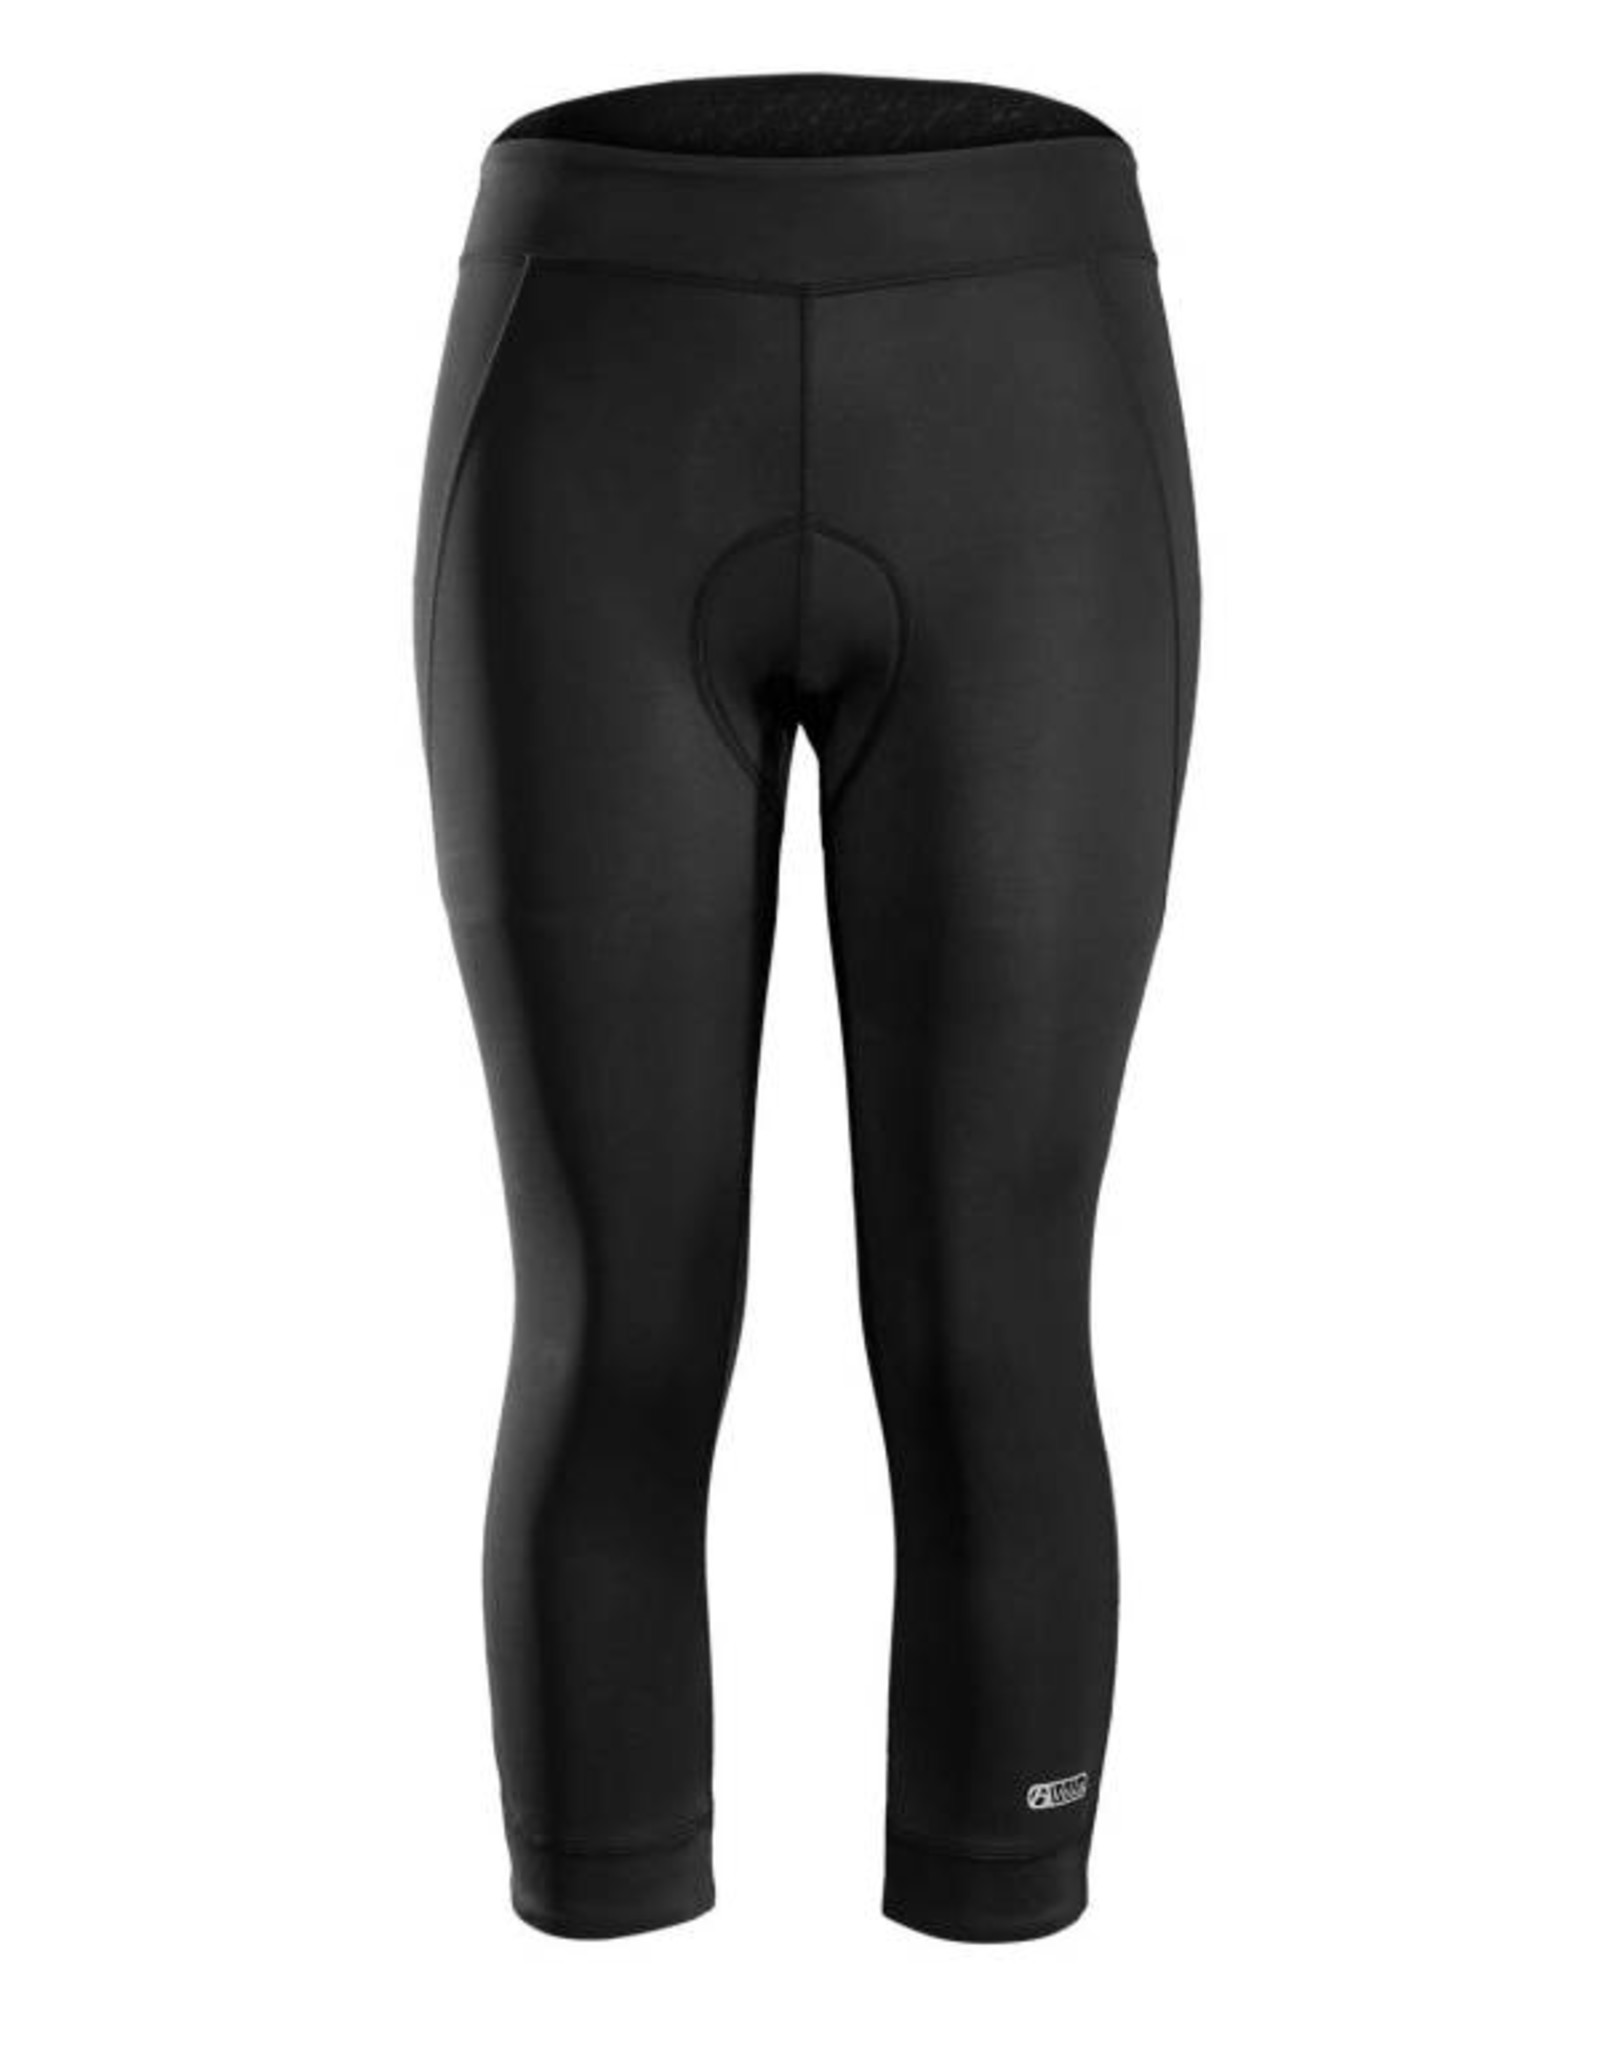 BONTRAGER Bontrager Vella Women's Medium Black Knicker